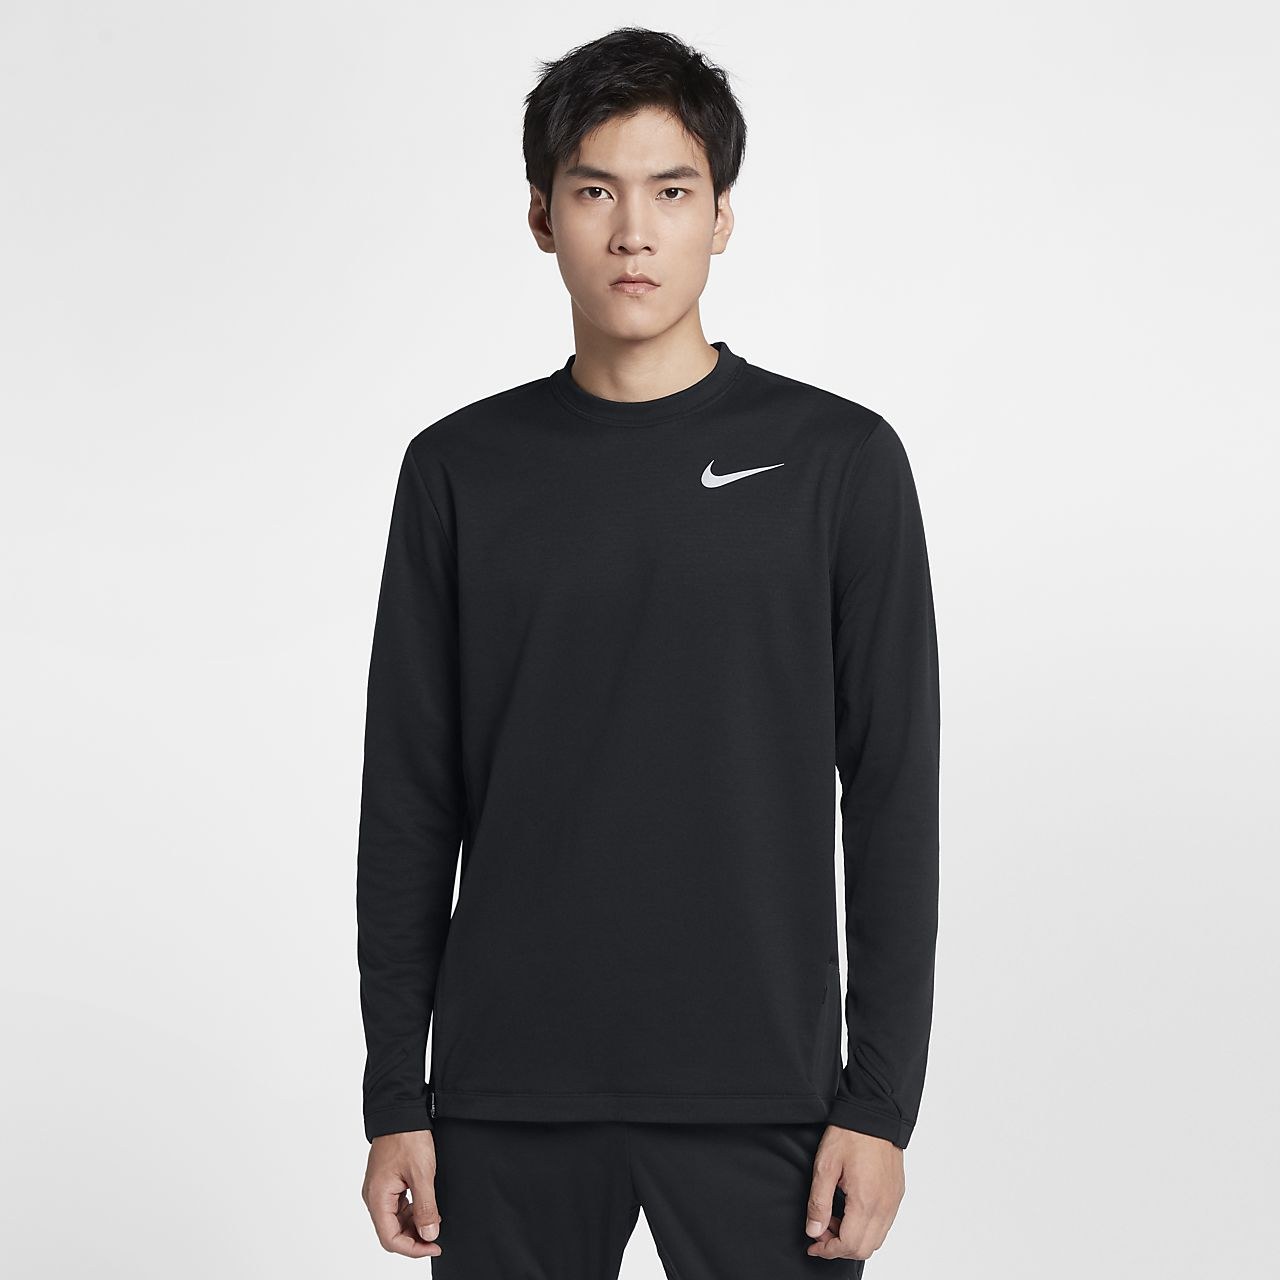 311d245a Fitnessmode Nike Mens Therma Fit Dry Element Running Sphere Crew Shirt Save  50%! XL Sporttops